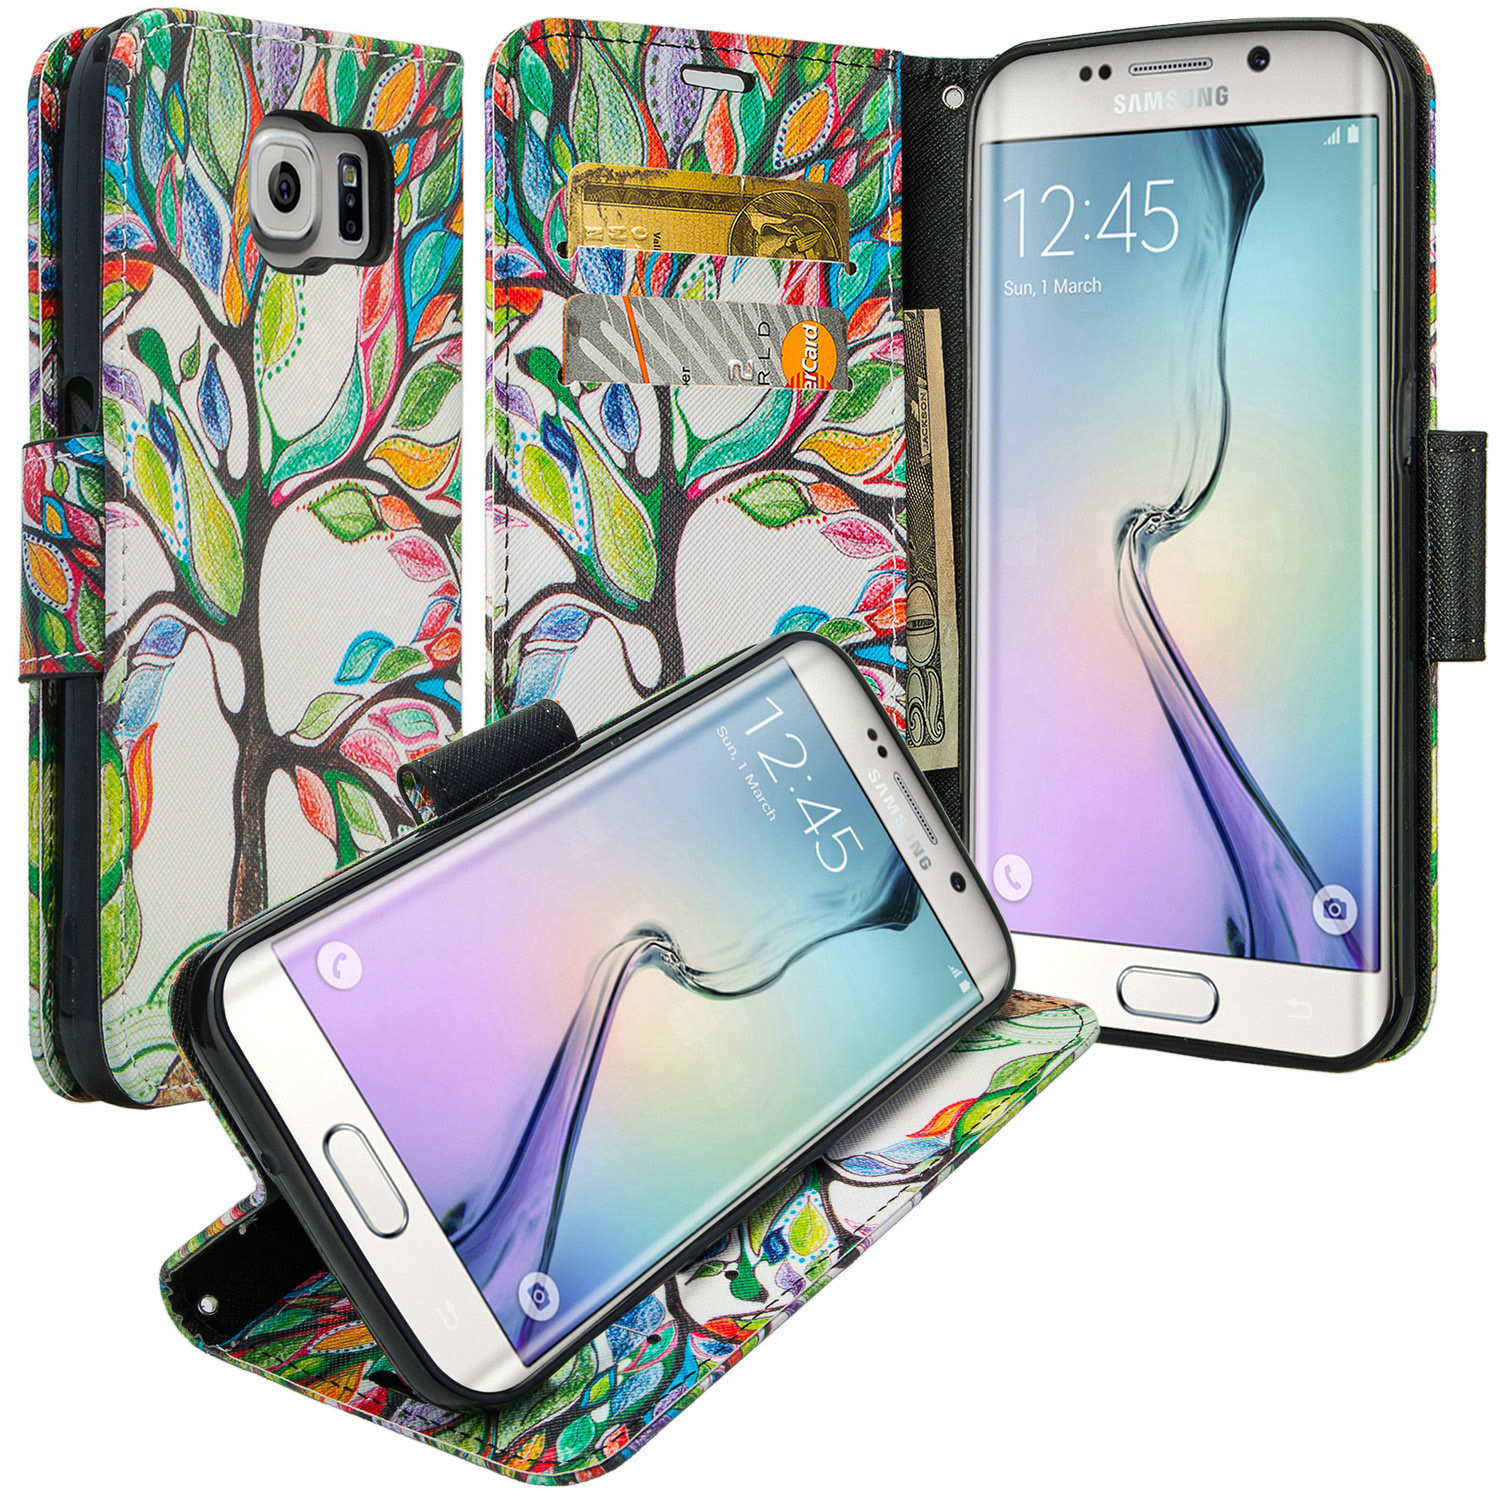 Samsung Galaxy S6 Edge Plus Wallet Case, Wrist Strap Magnetic Flip Fold[Kickstand] Pu Leather Wallet Case with ID & Card Slots for Galaxy S6 Edge Plus - Colorful Tree